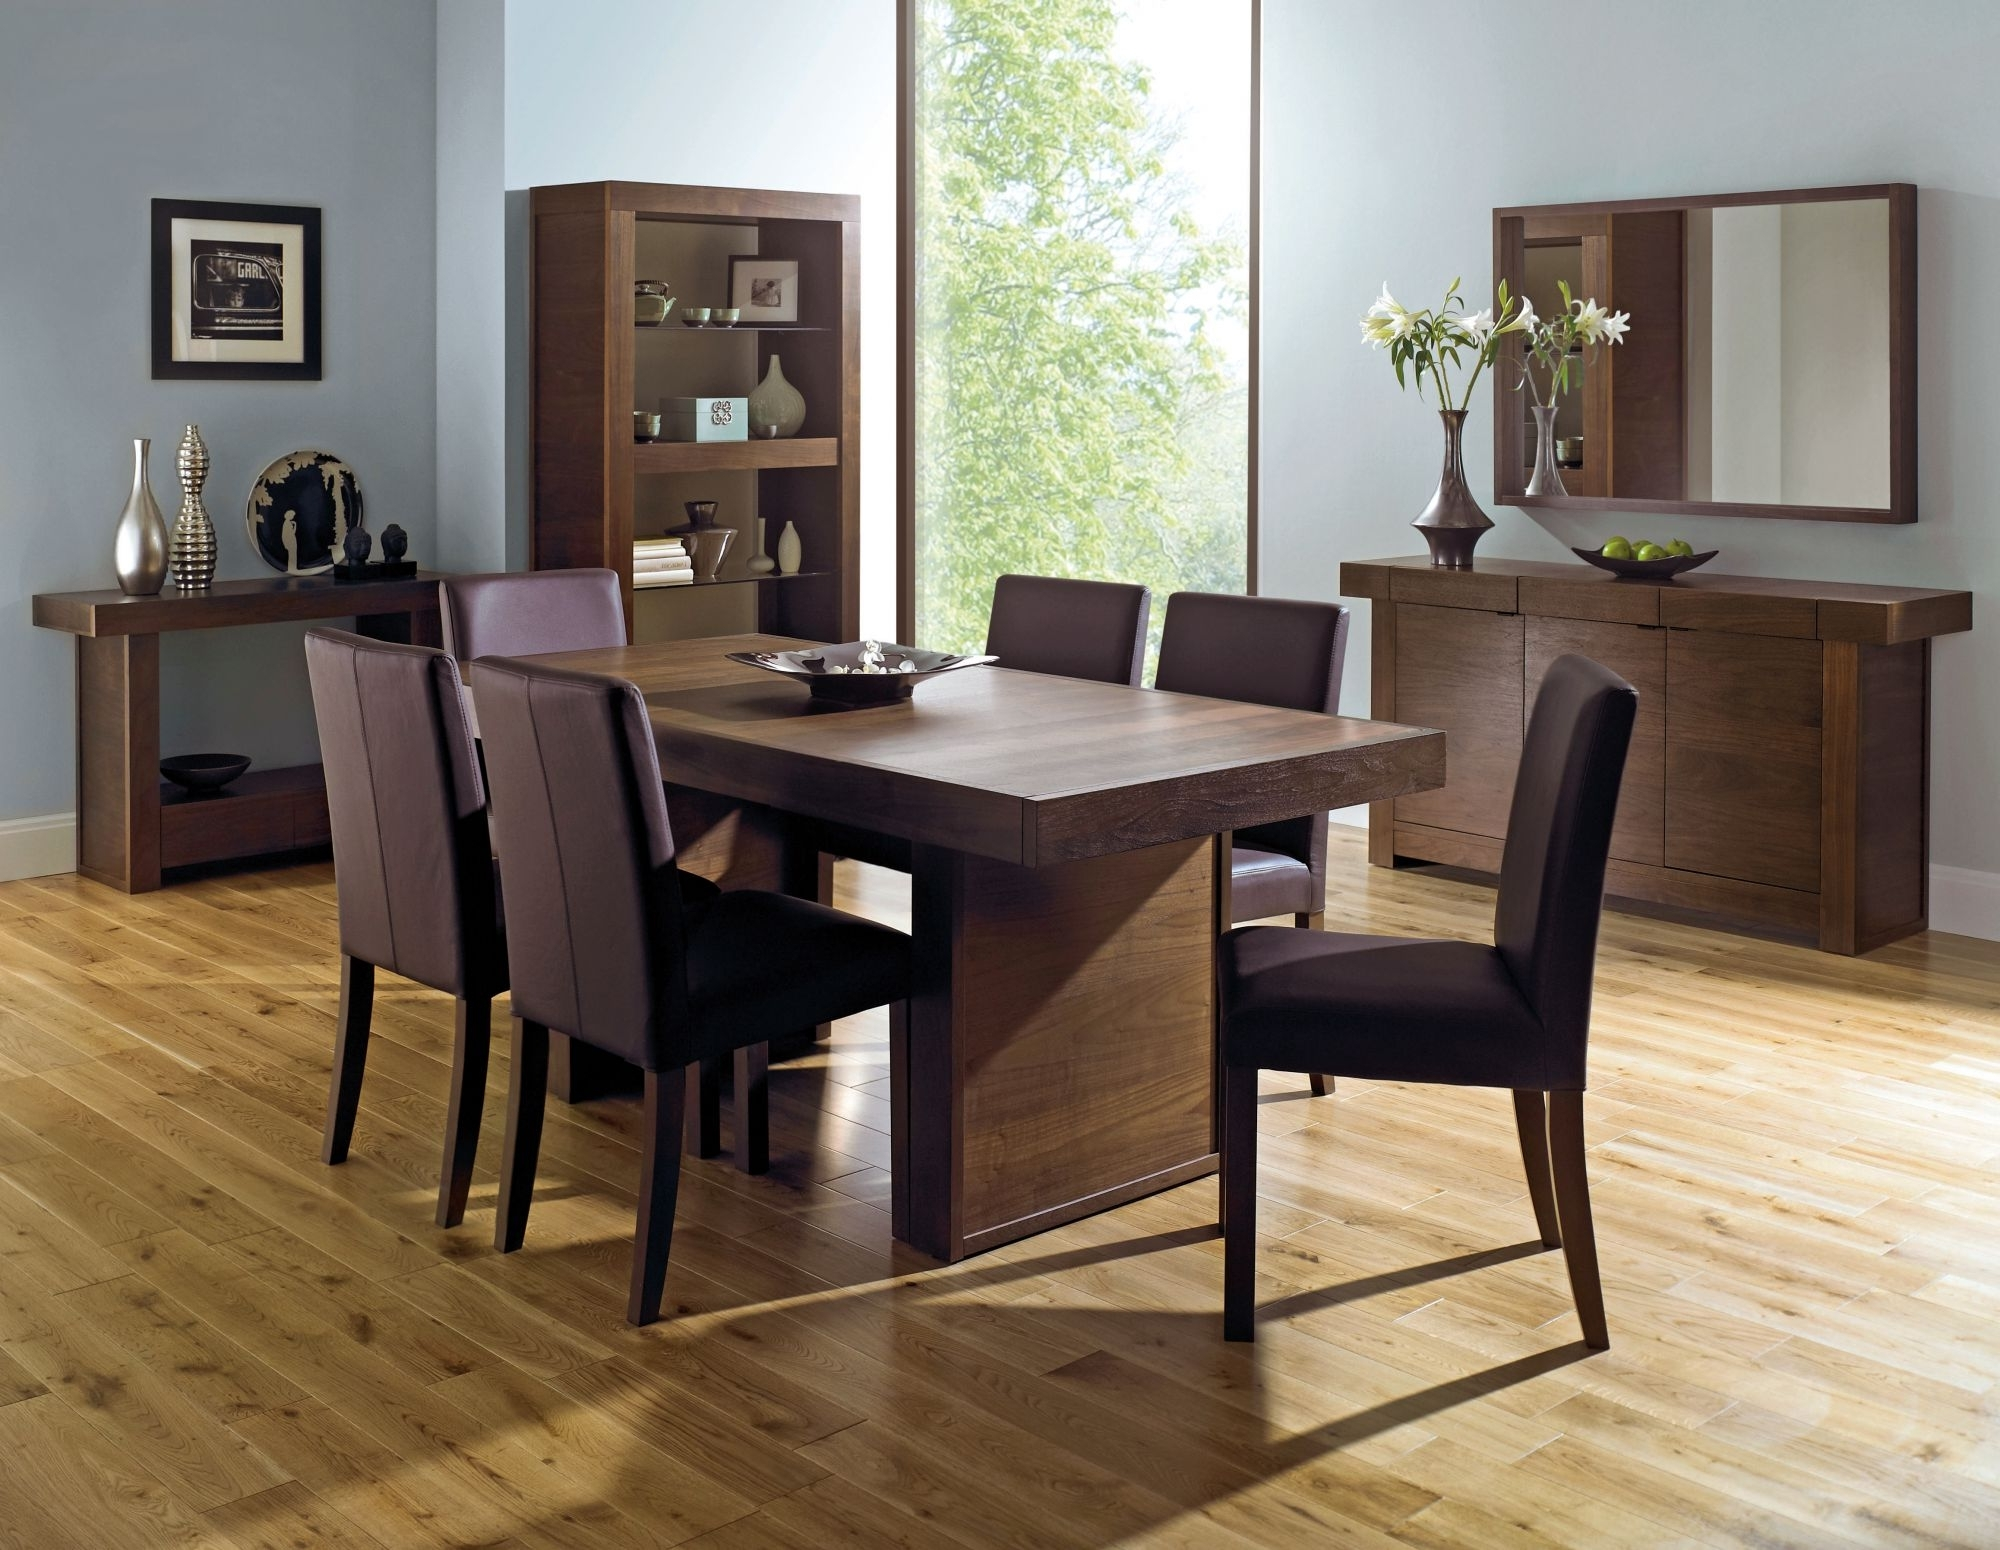 Trendy Walnut Dining Table And 6 Chairs Intended For Bentley Designs Akita Walnut Panel Dining Table + 6 Square Back (View 20 of 25)